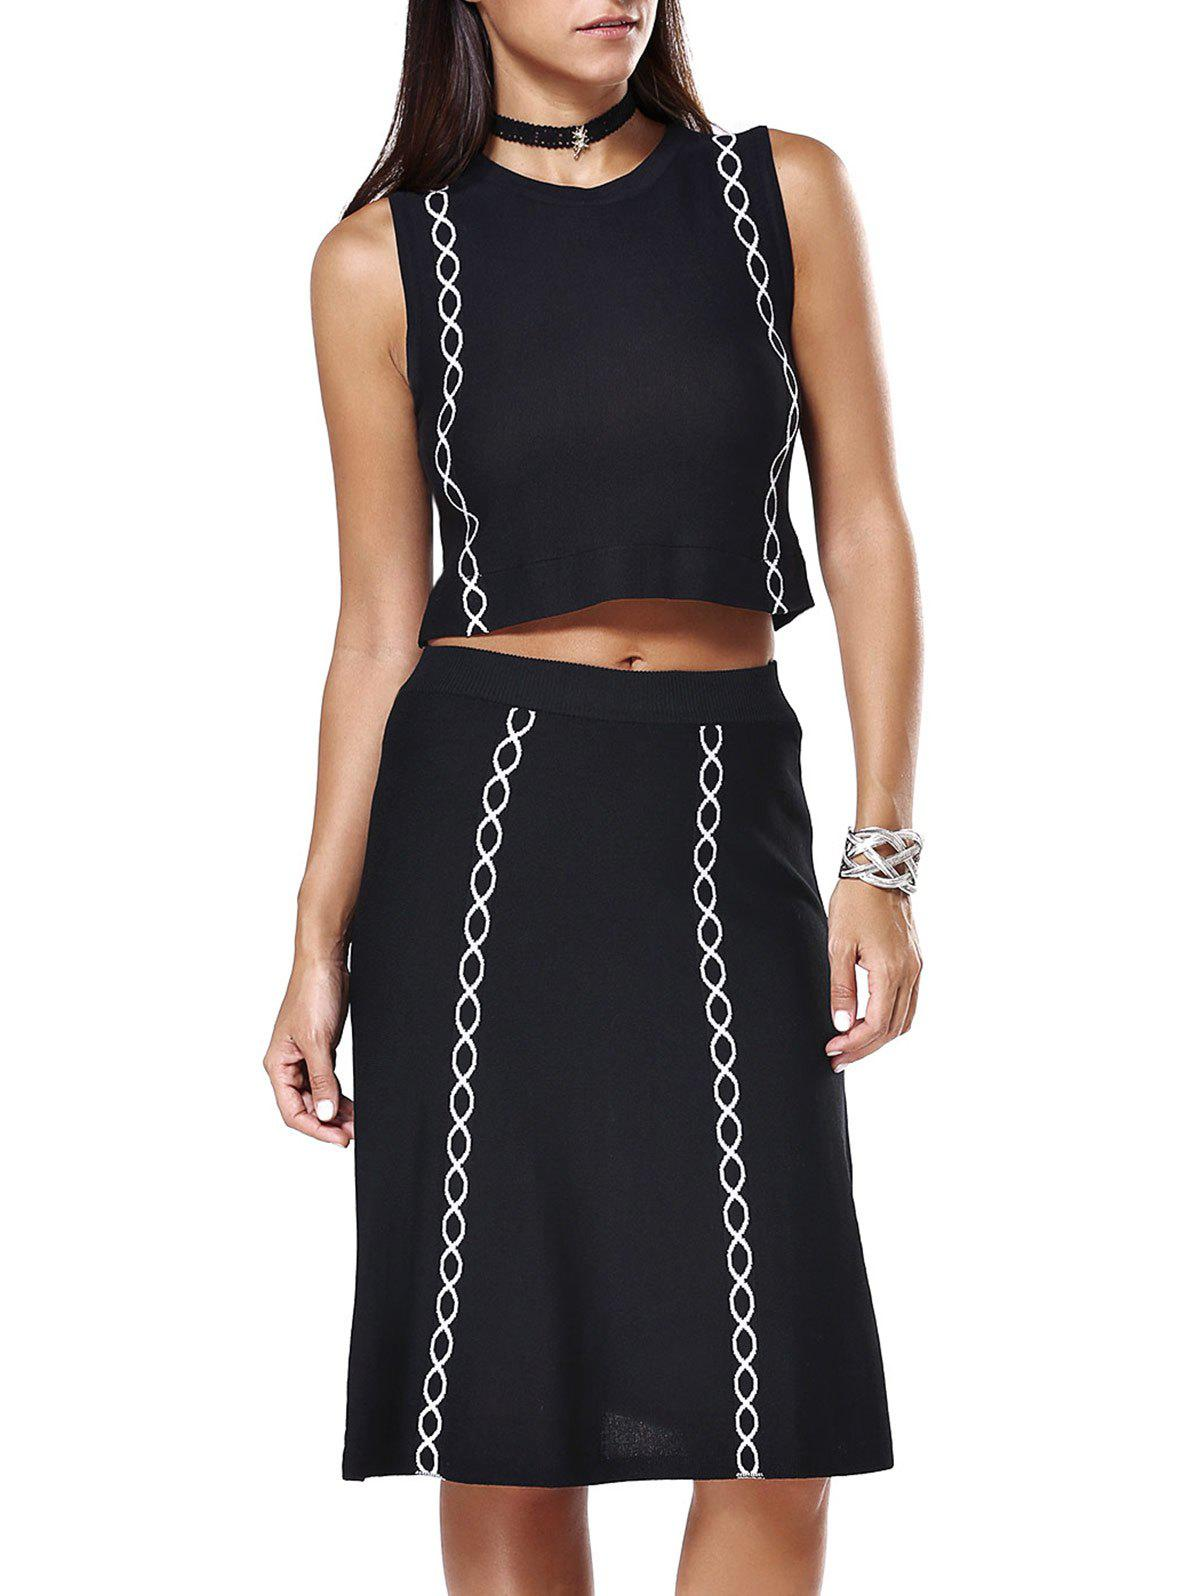 Ripple Pattern Crop Top and Midi Skirt Twinset - BLACK ONE SIZE